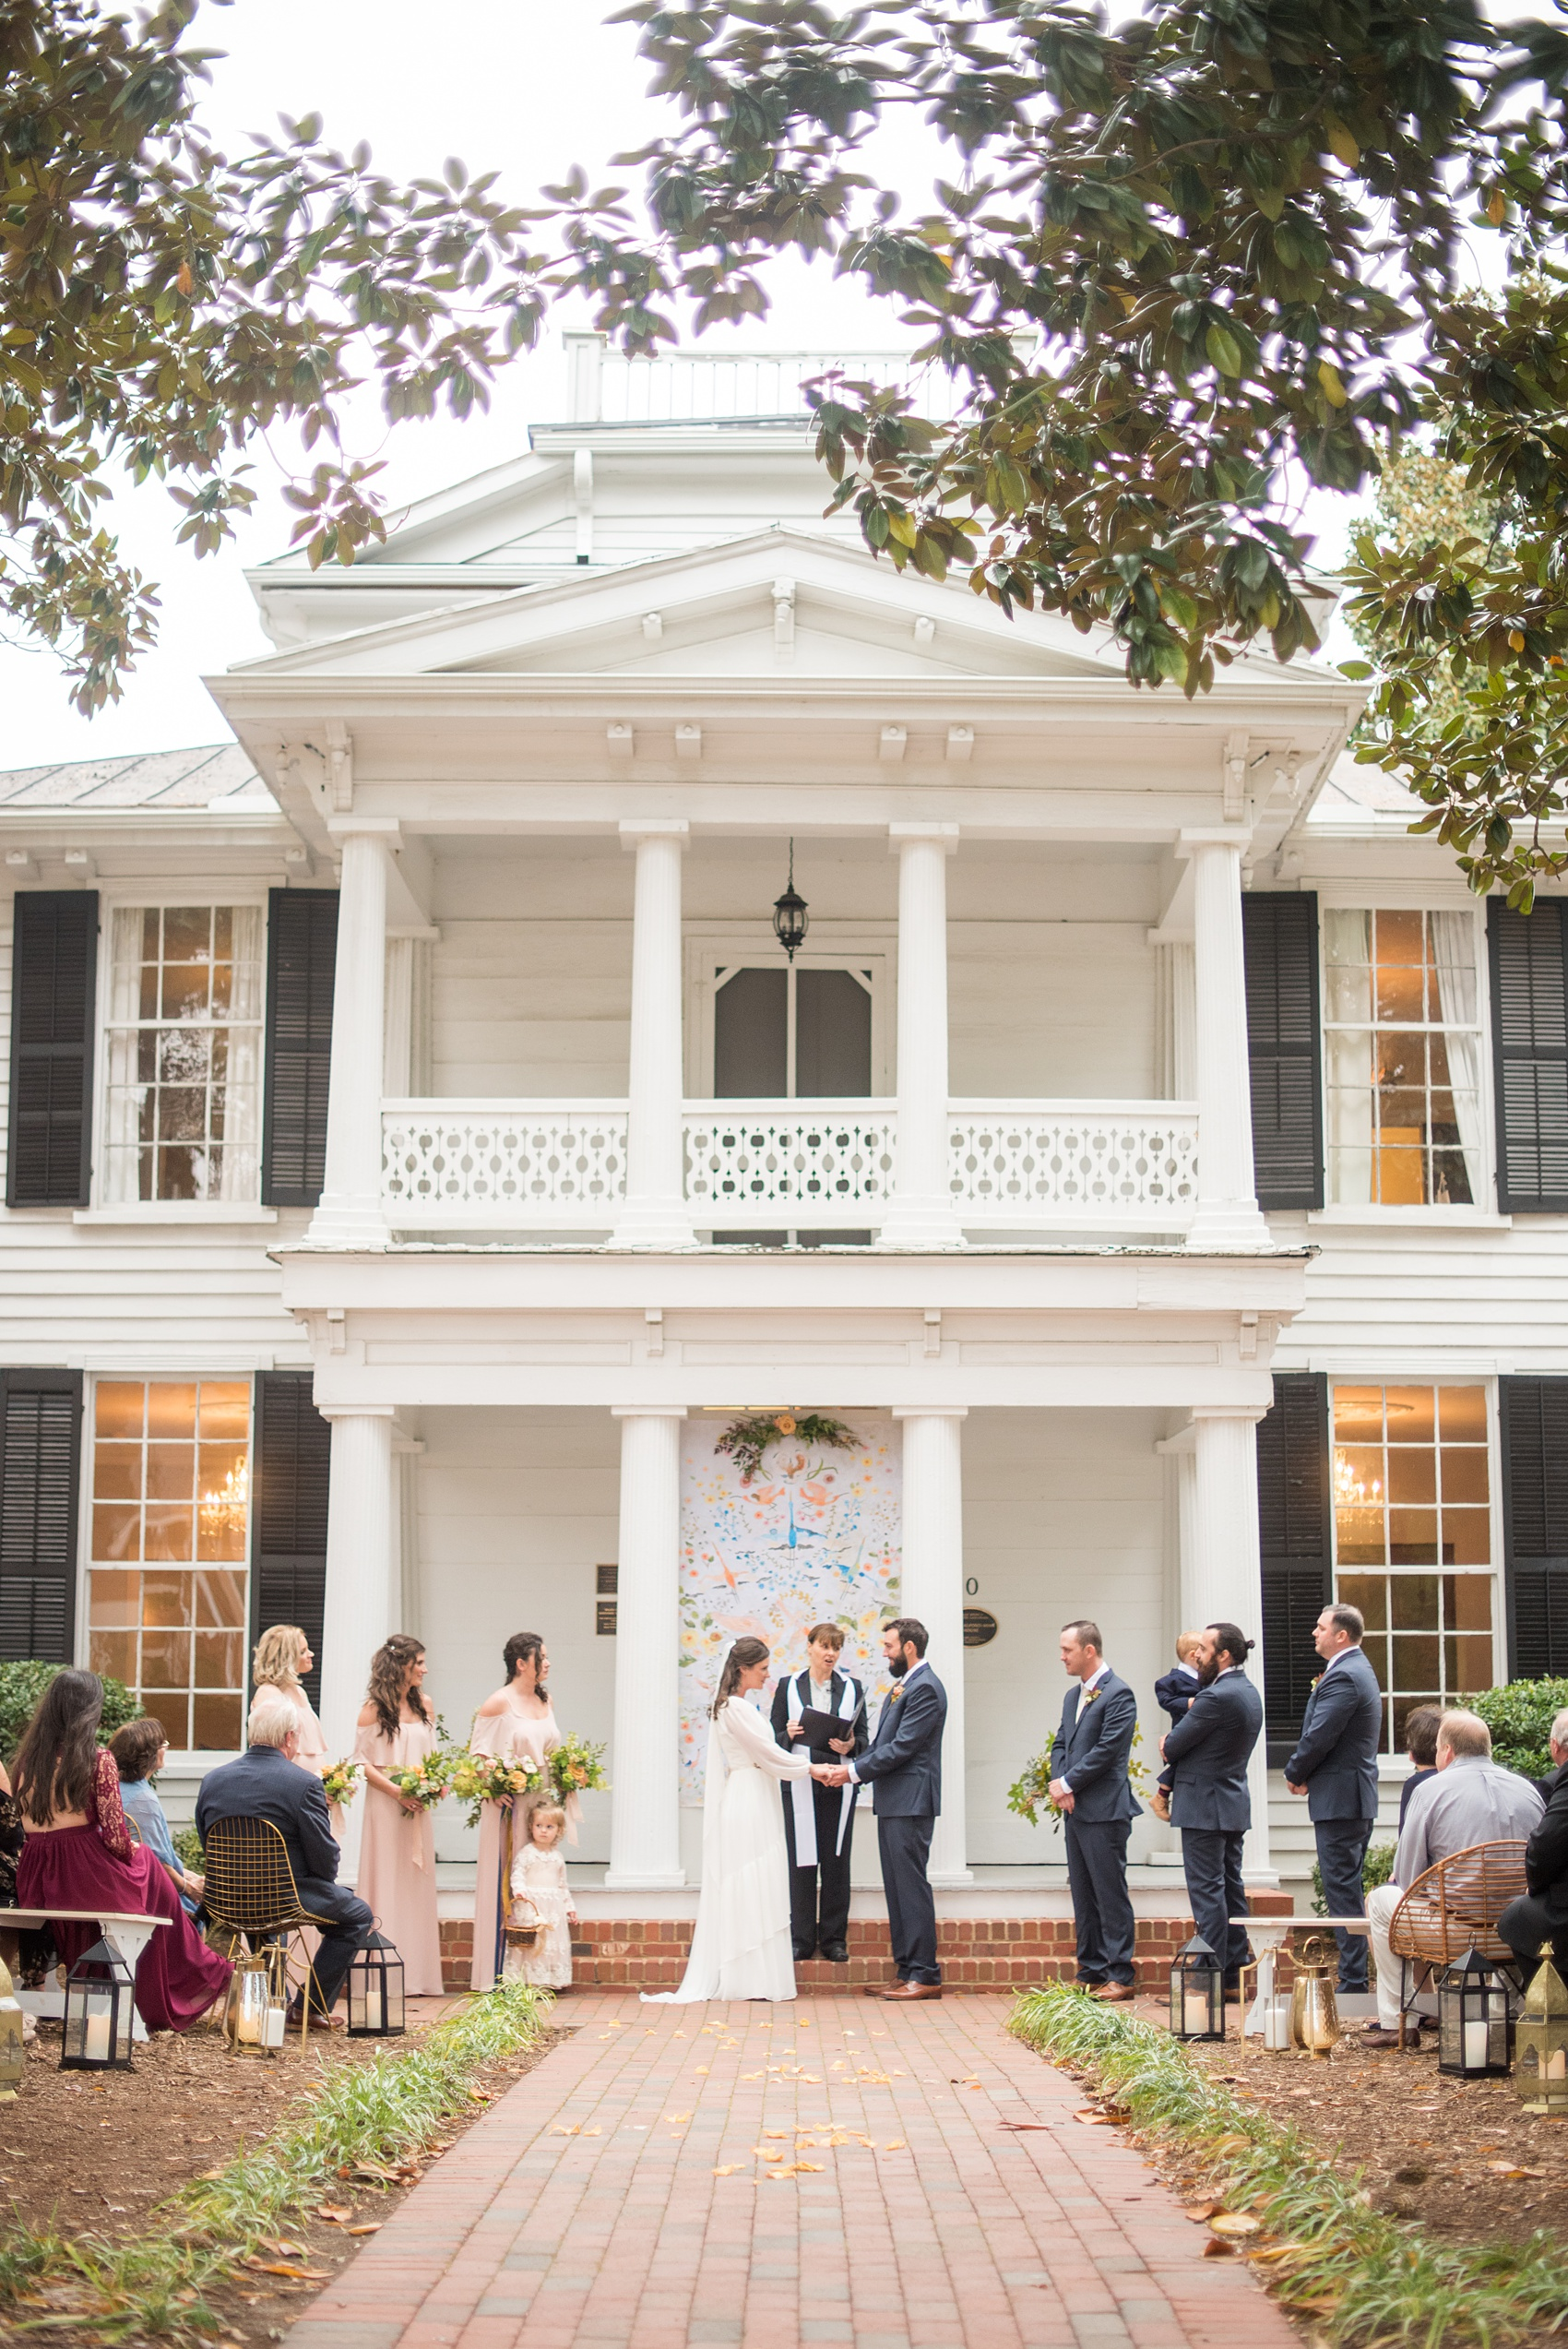 Mikkel Paige Photography photos from a wedding at Leslie-Alford Mims House in North Carolina. Picture of the outdoor ceremony with colorful BHLDN batik backdrop for nuptials at the historic southern home.